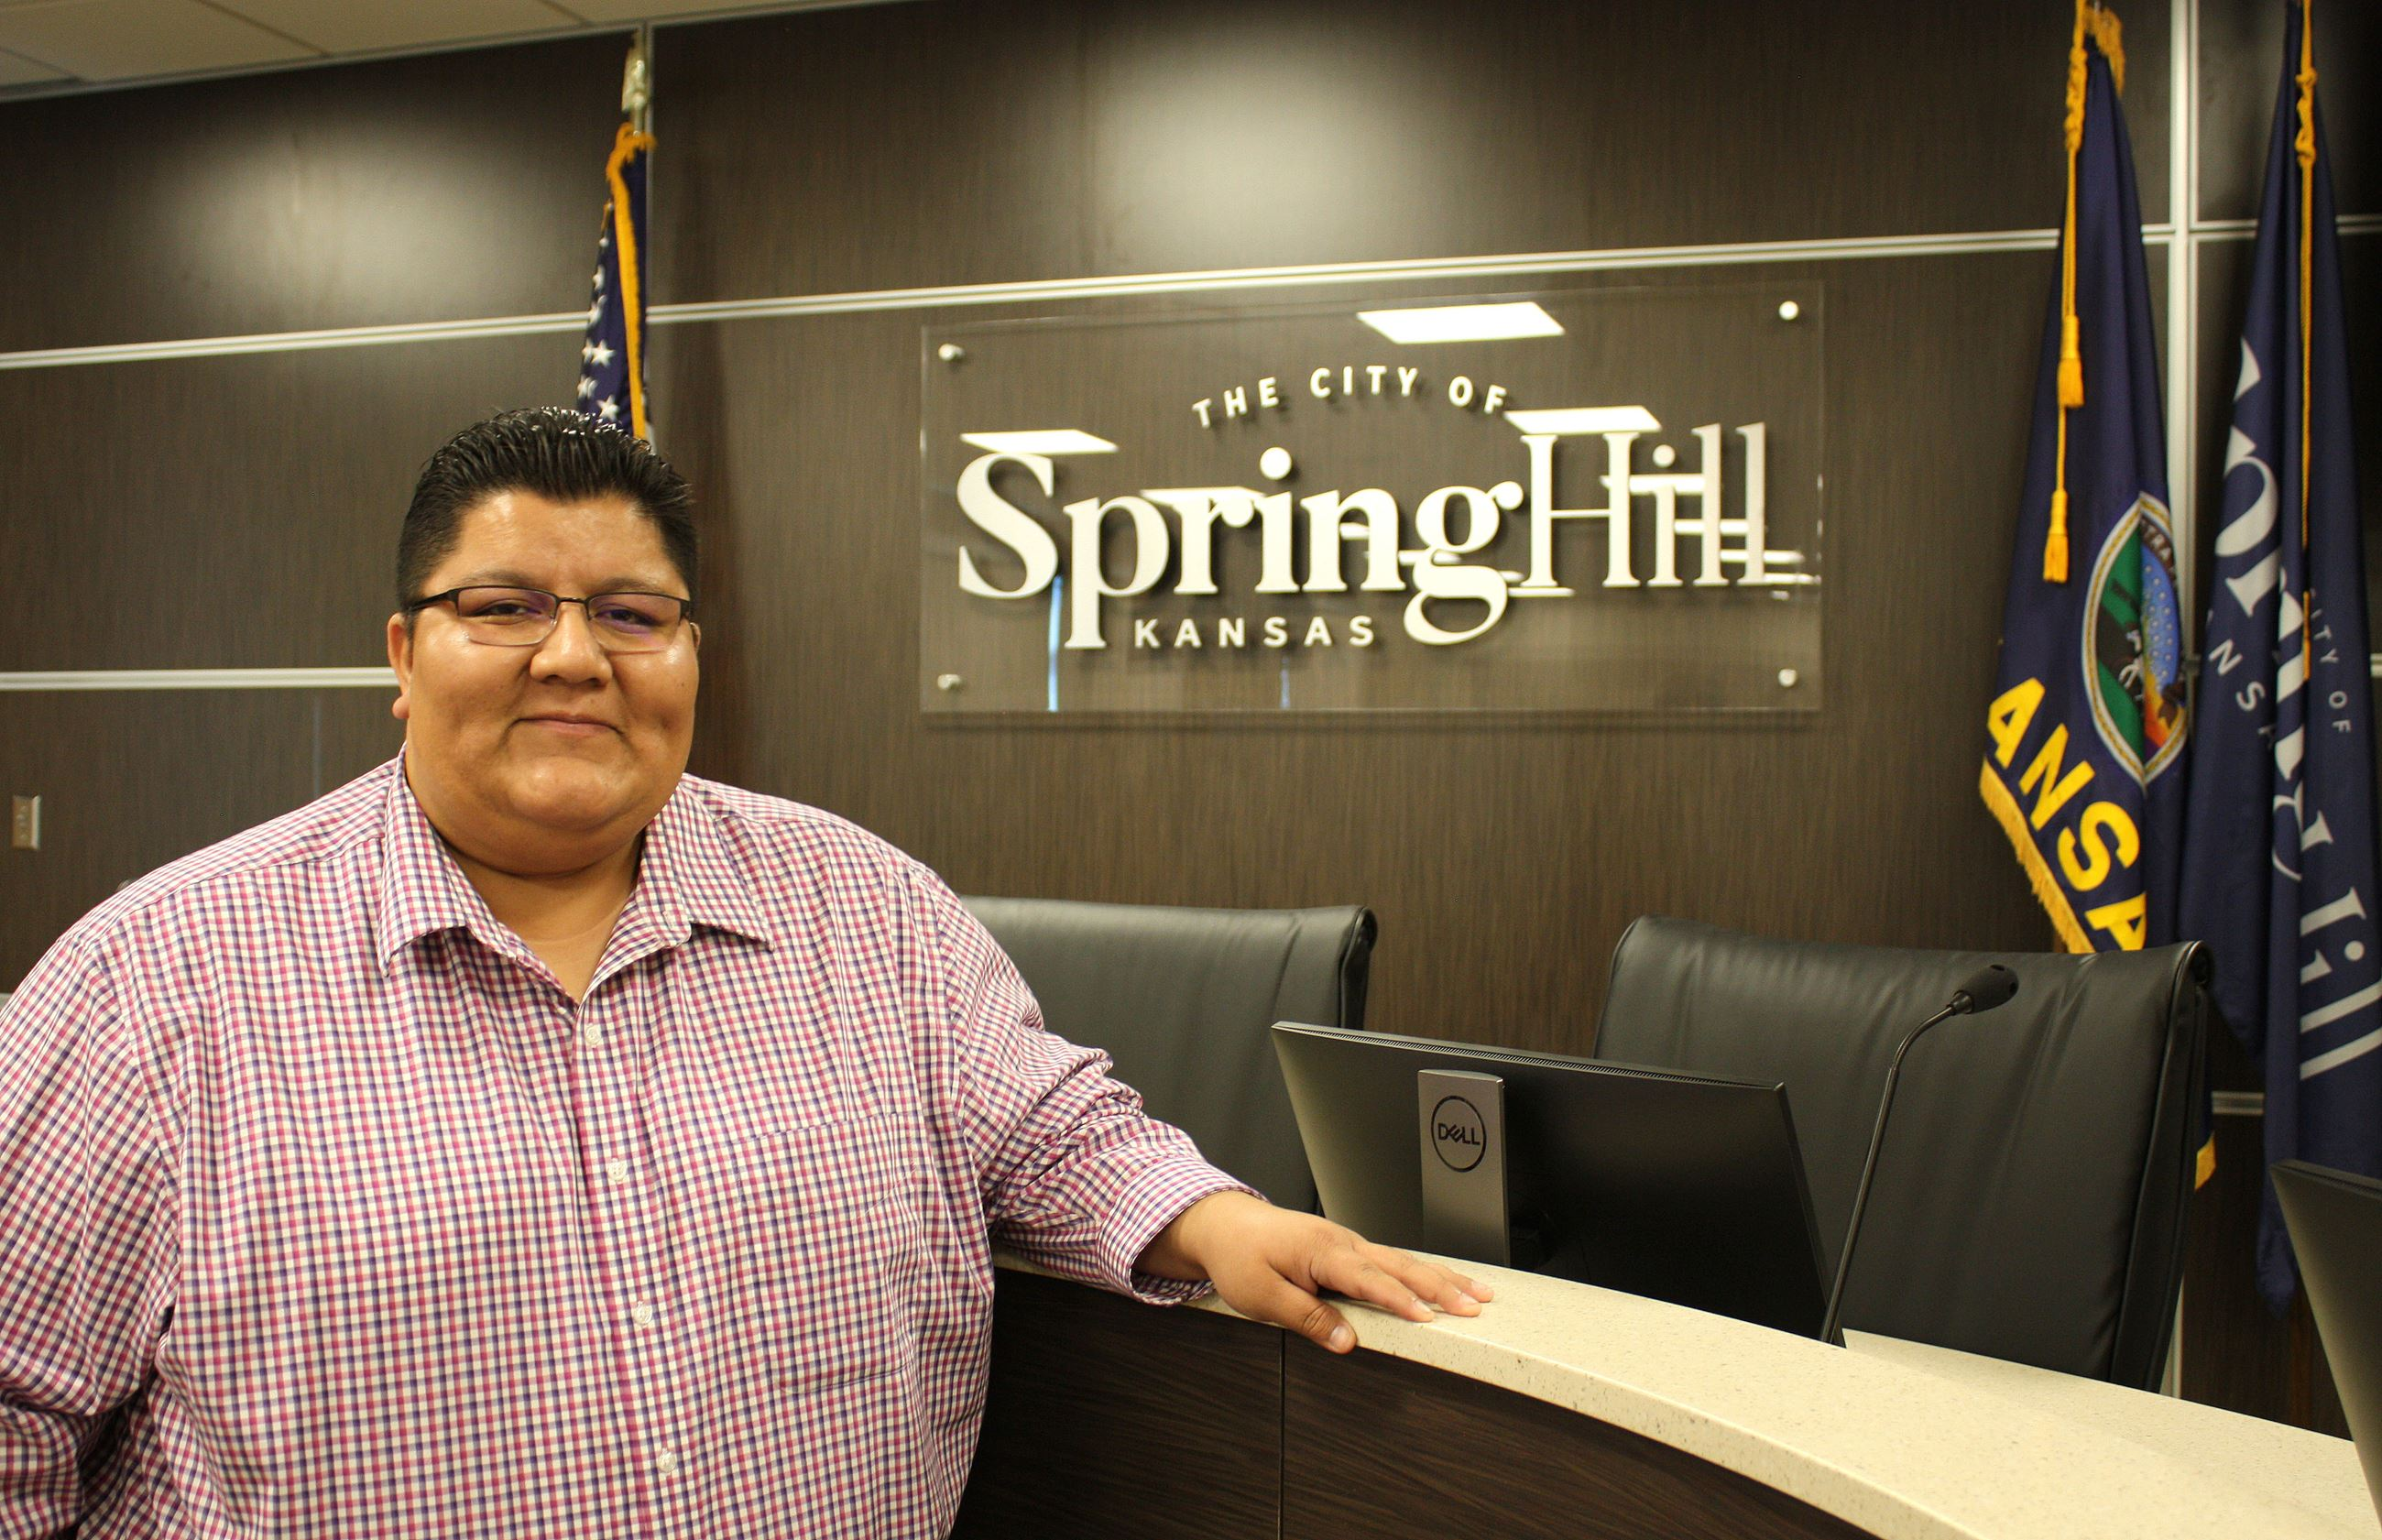 Jose Leon poses in front of a City of Spring Hill sign at the Spring Hill Civic Center